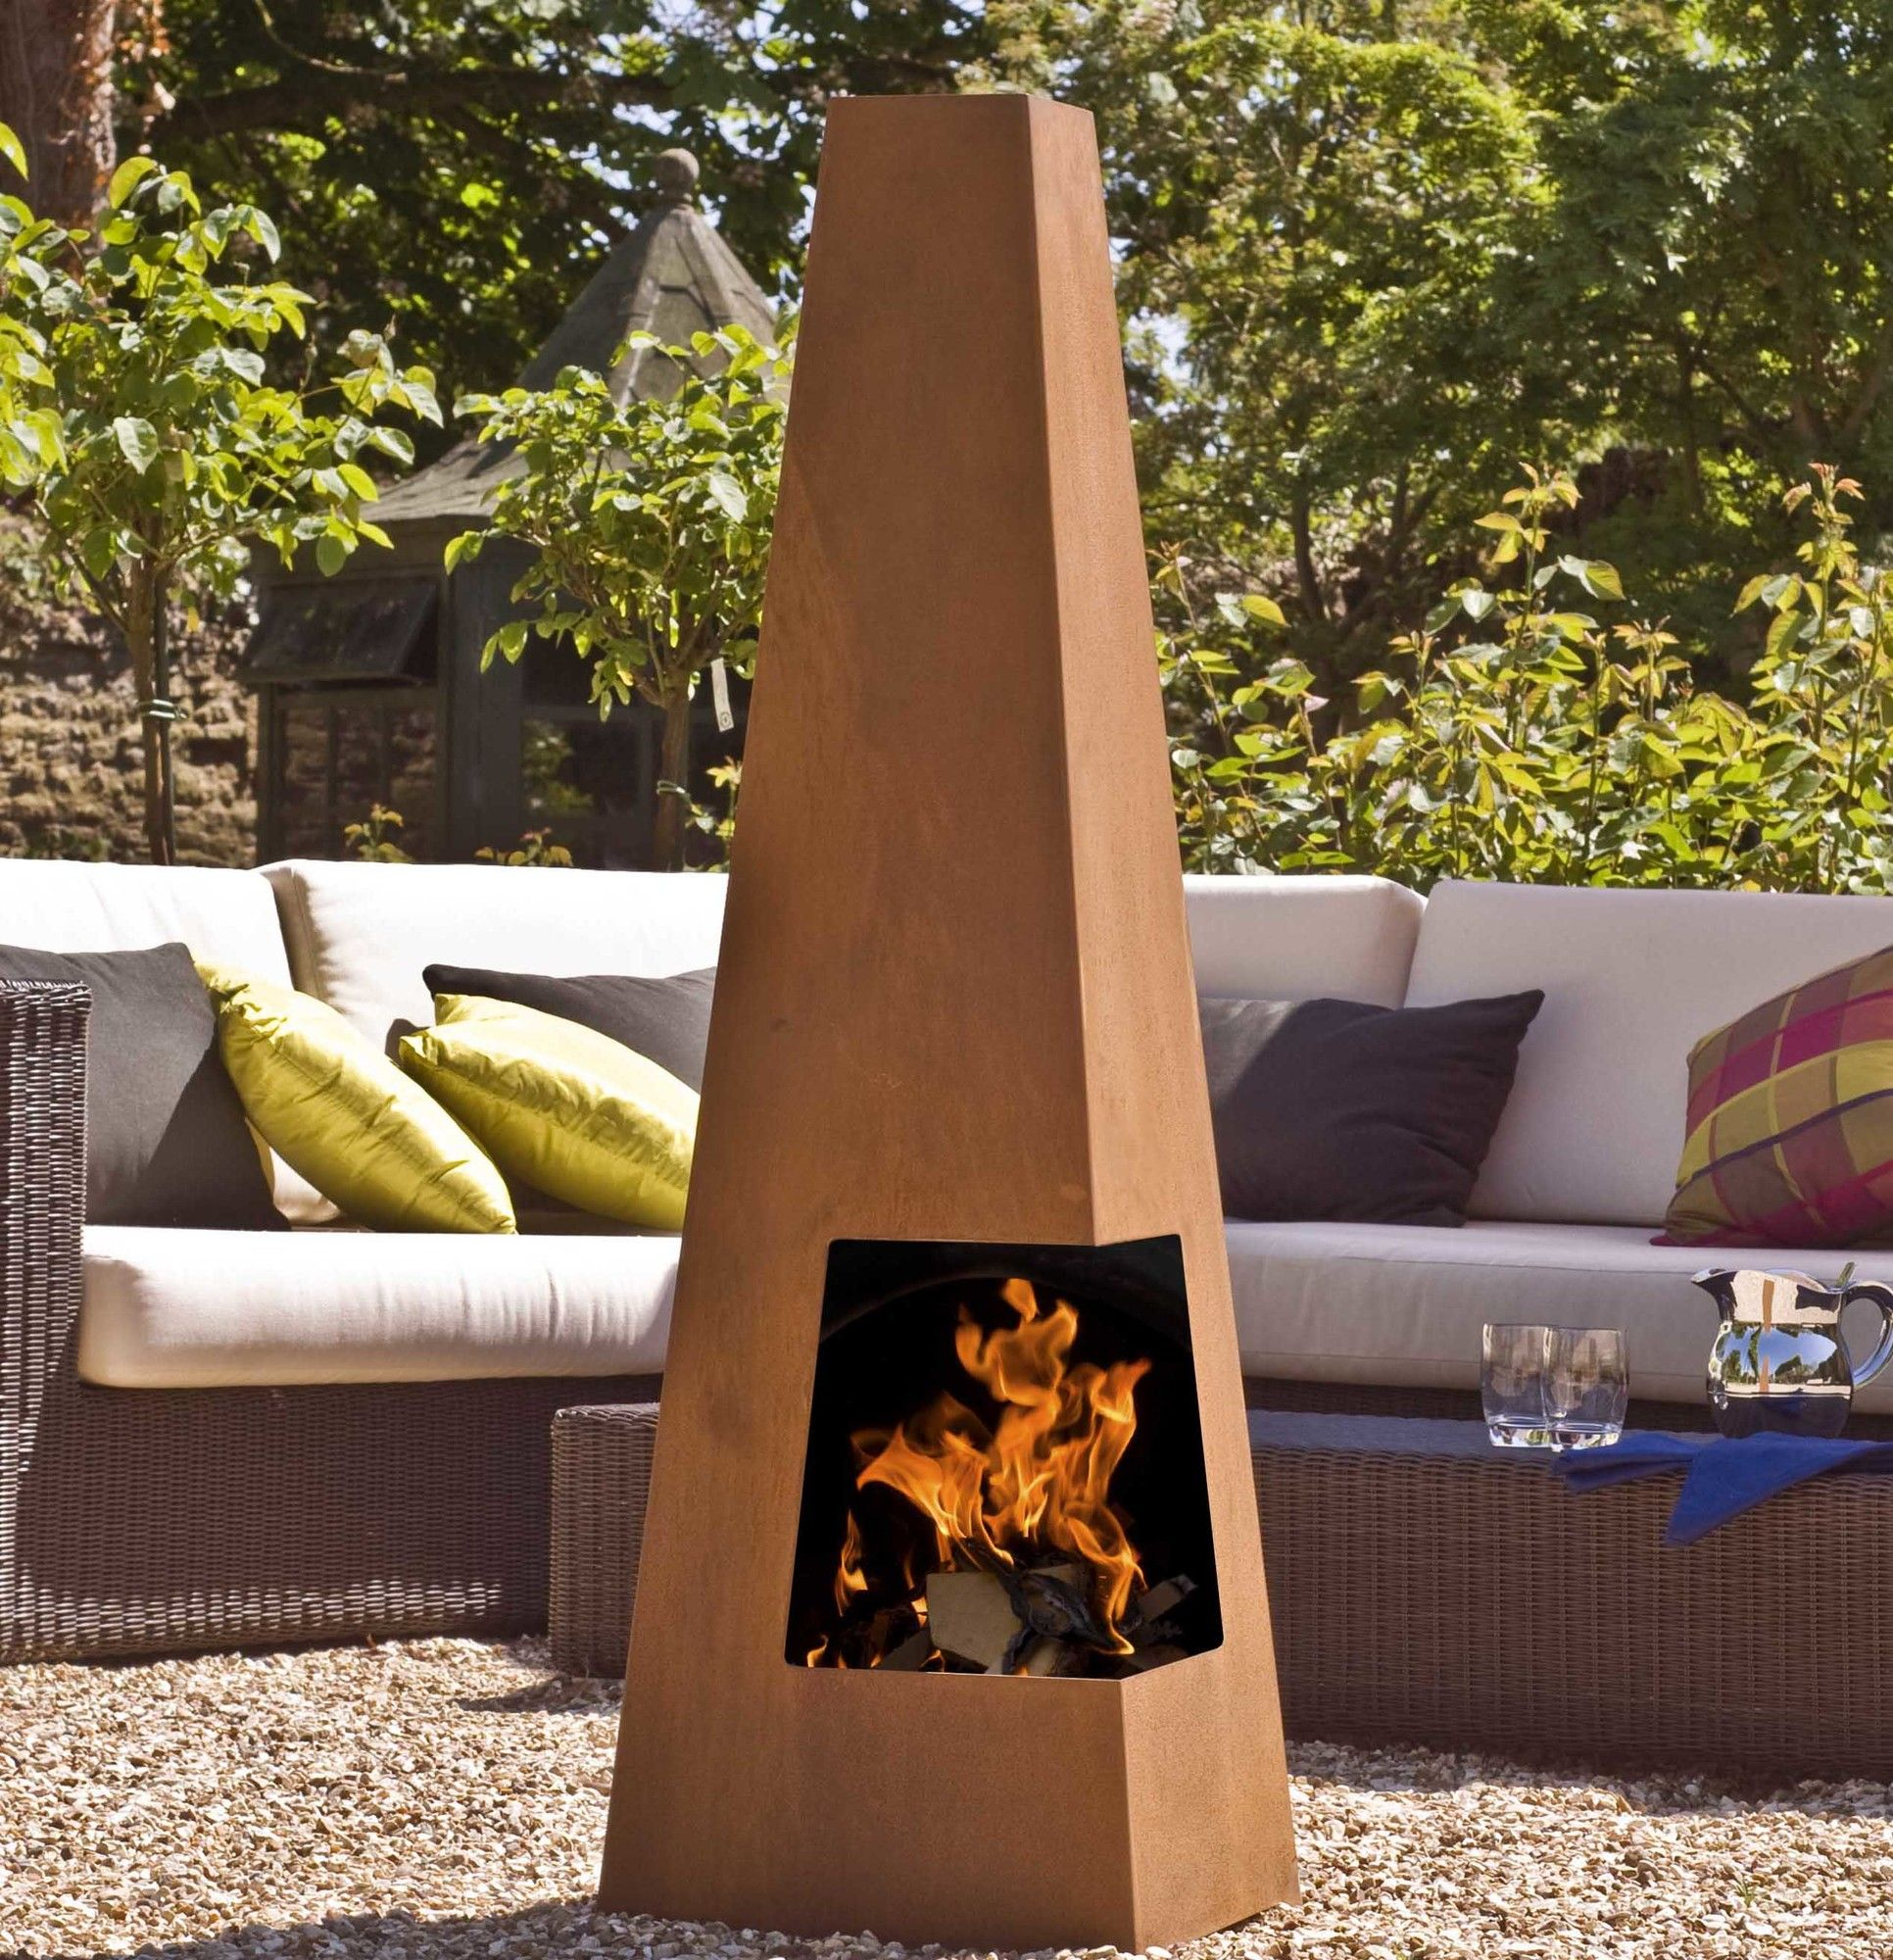 9dfc68291bad3912a40e3d86a7b41cc7 Top Result 50 Awesome Steel Outdoor Fireplace Gallery 2018 Hiw6